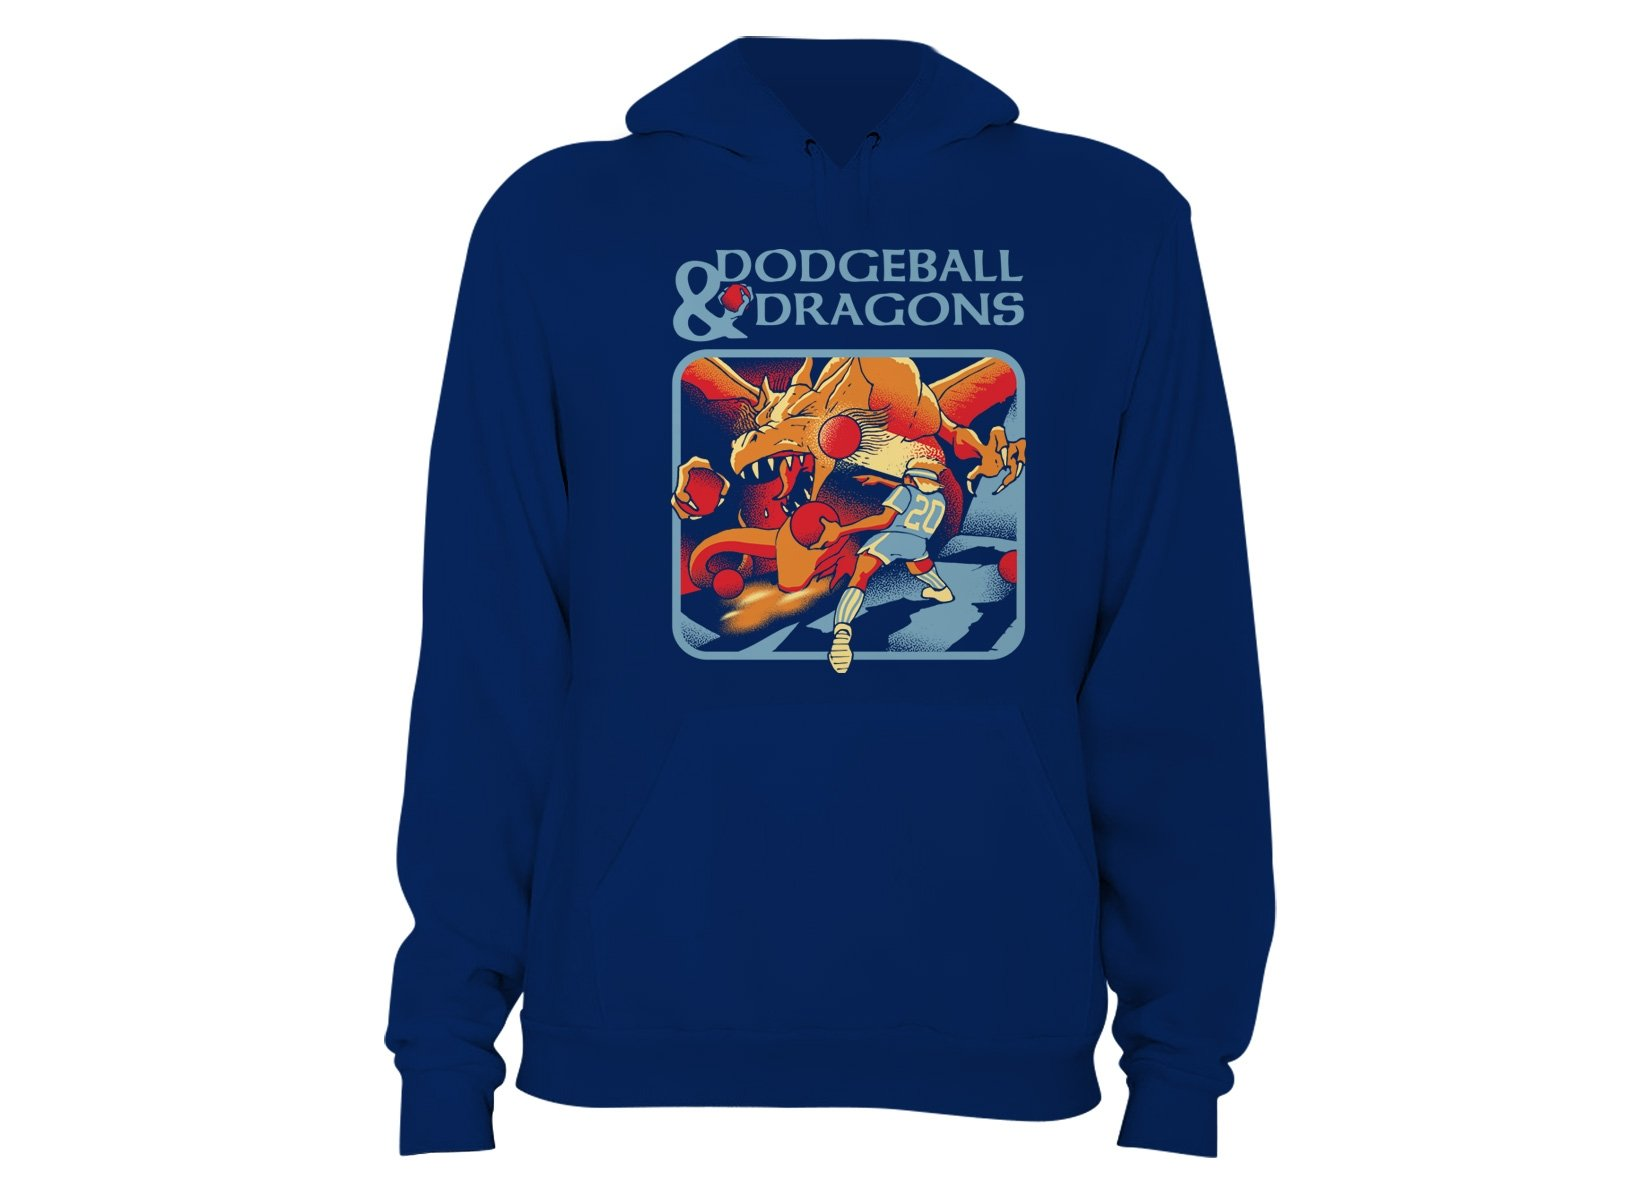 Dodgeball And Dragons on Hoodie